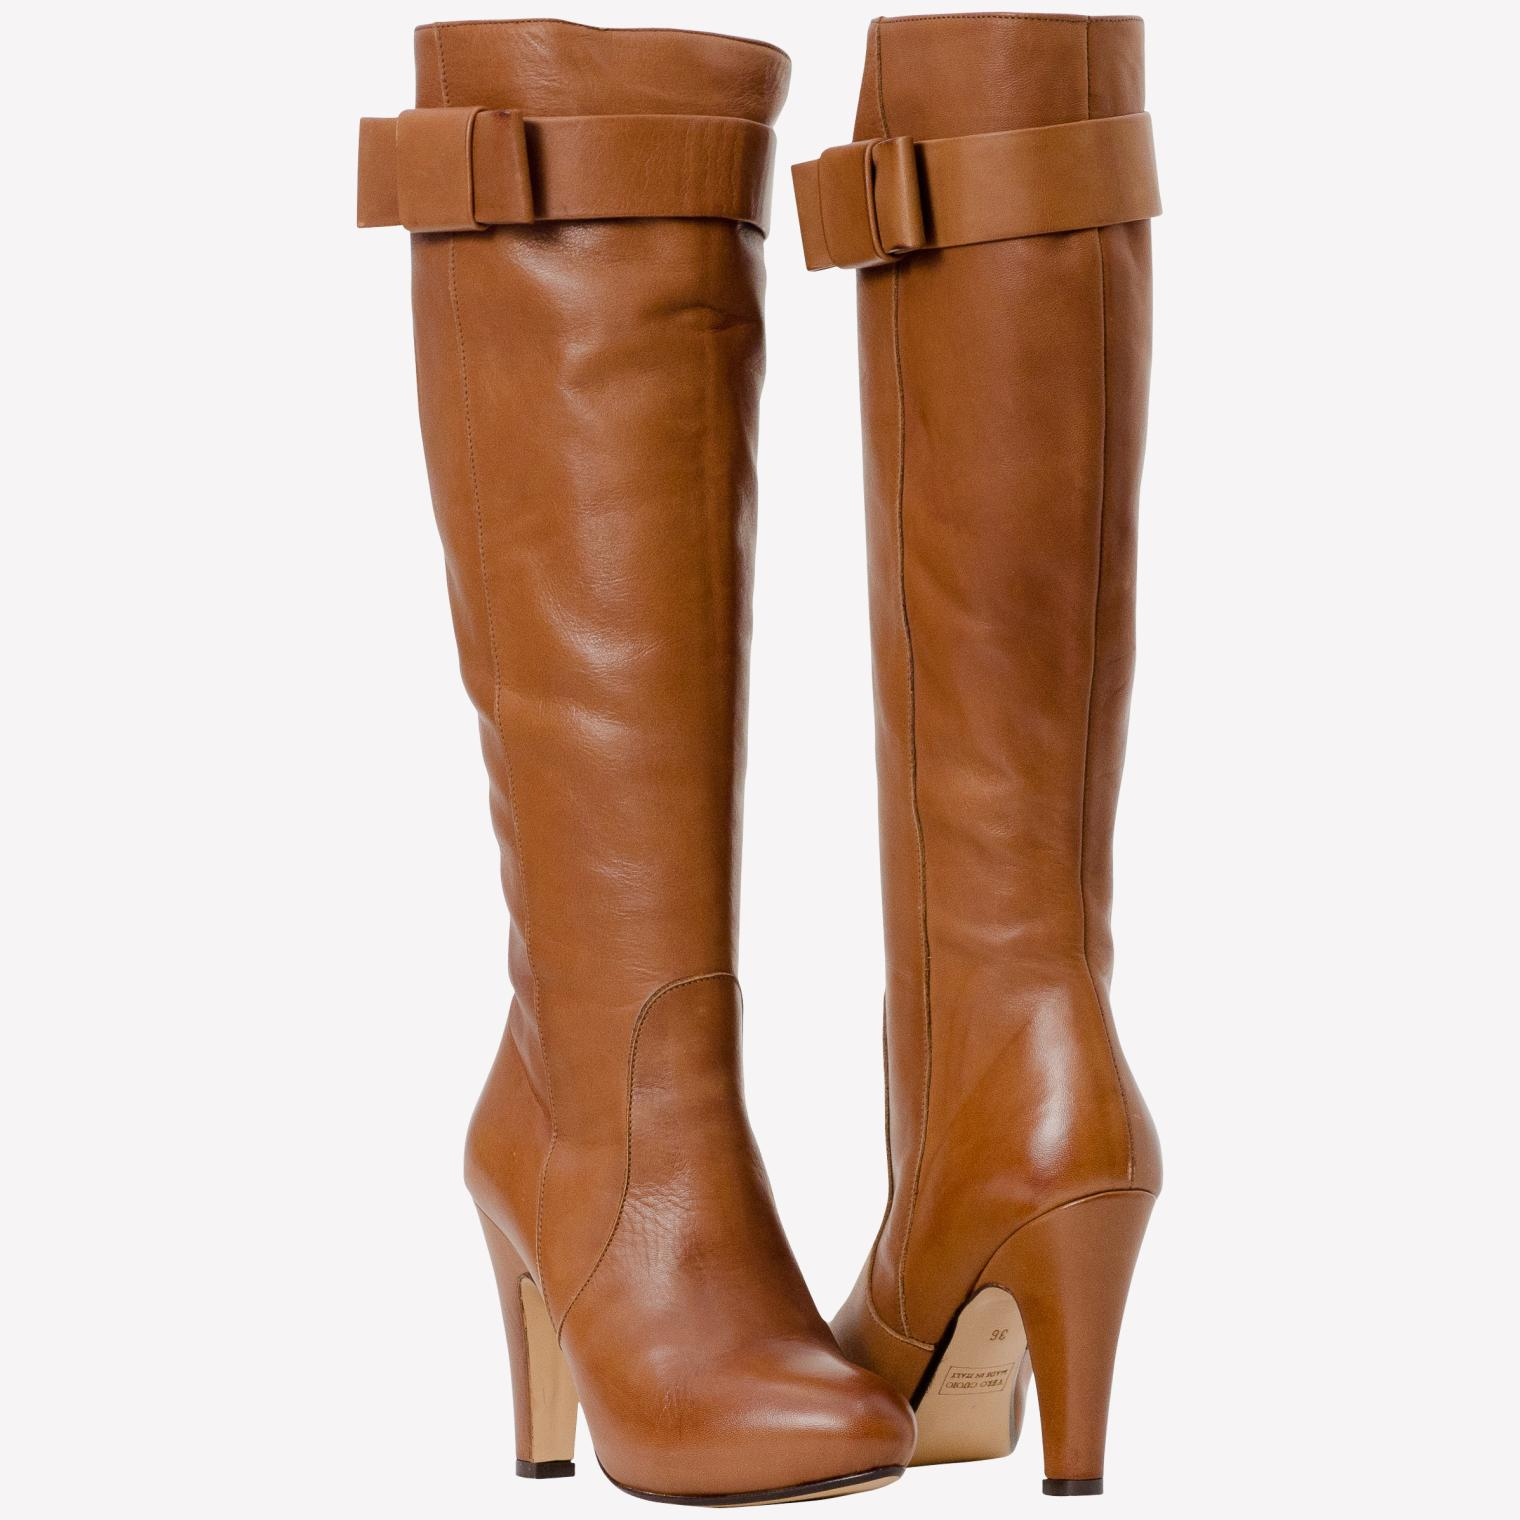 brown leather boots tall tan boots with heels for women | marion beige tan tall leather boots | GJSRPIY